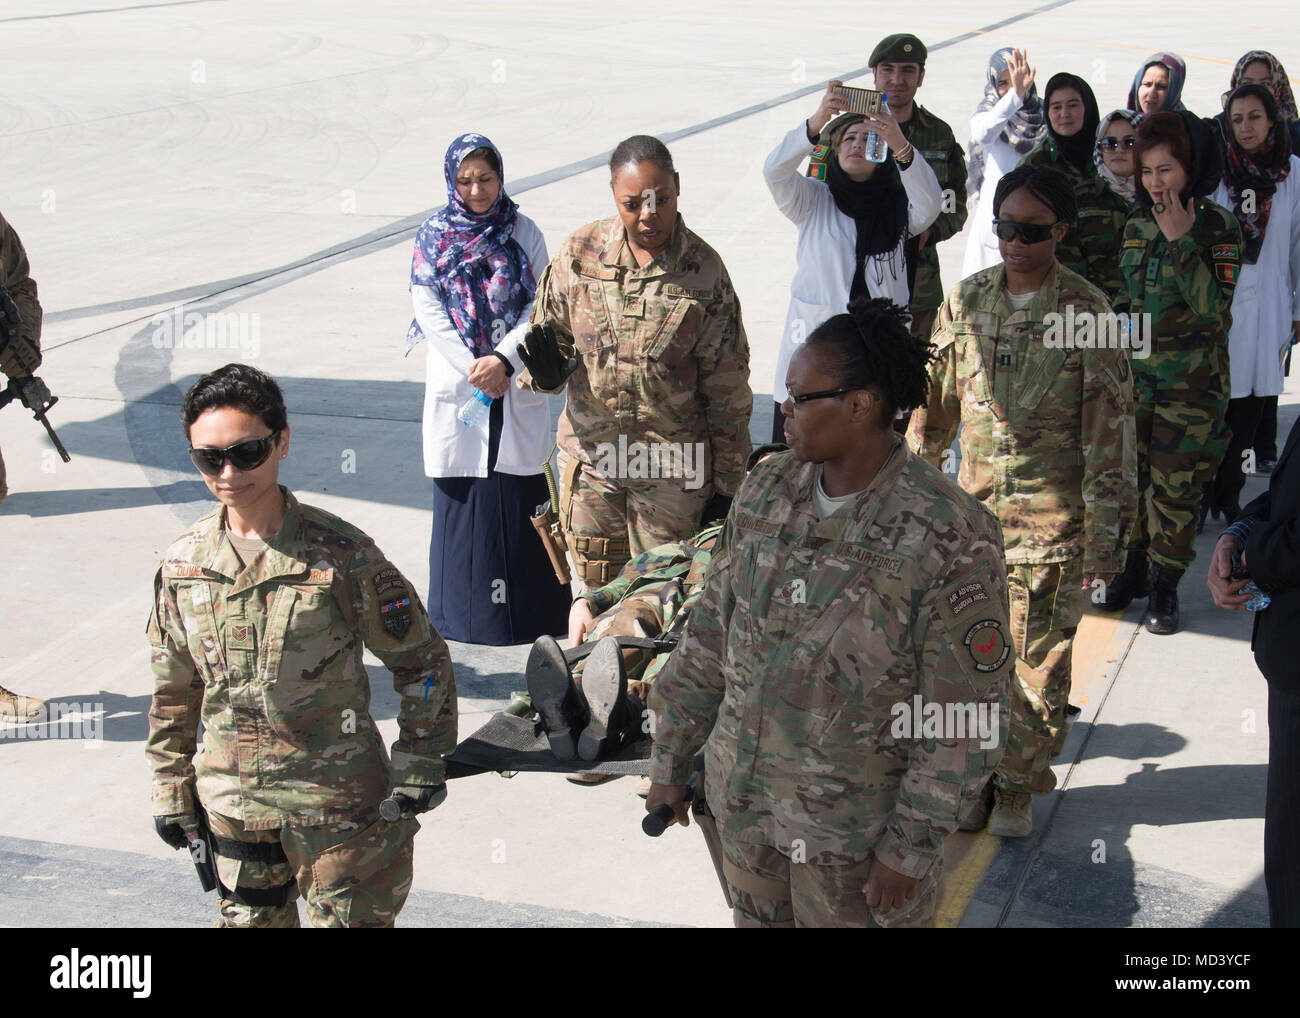 Master Sgt. Ruth Celestine, Train, Advise, Assist Command-Air medical advisor, discusses how to transition from a four-person litter carry to a two-person carry during an orientation class March 3, 2018, Kabul Air Wing, Afghanistan. The orientation was setup to help many of the new medics understand C-130 patient litter capabilities, casualty evacuation pre-flight mission configurations and in-flight/post-flight patient care requirements. (U.S. Air Force photo by Staff Sgt. Jared J. Duhon) - Stock Image